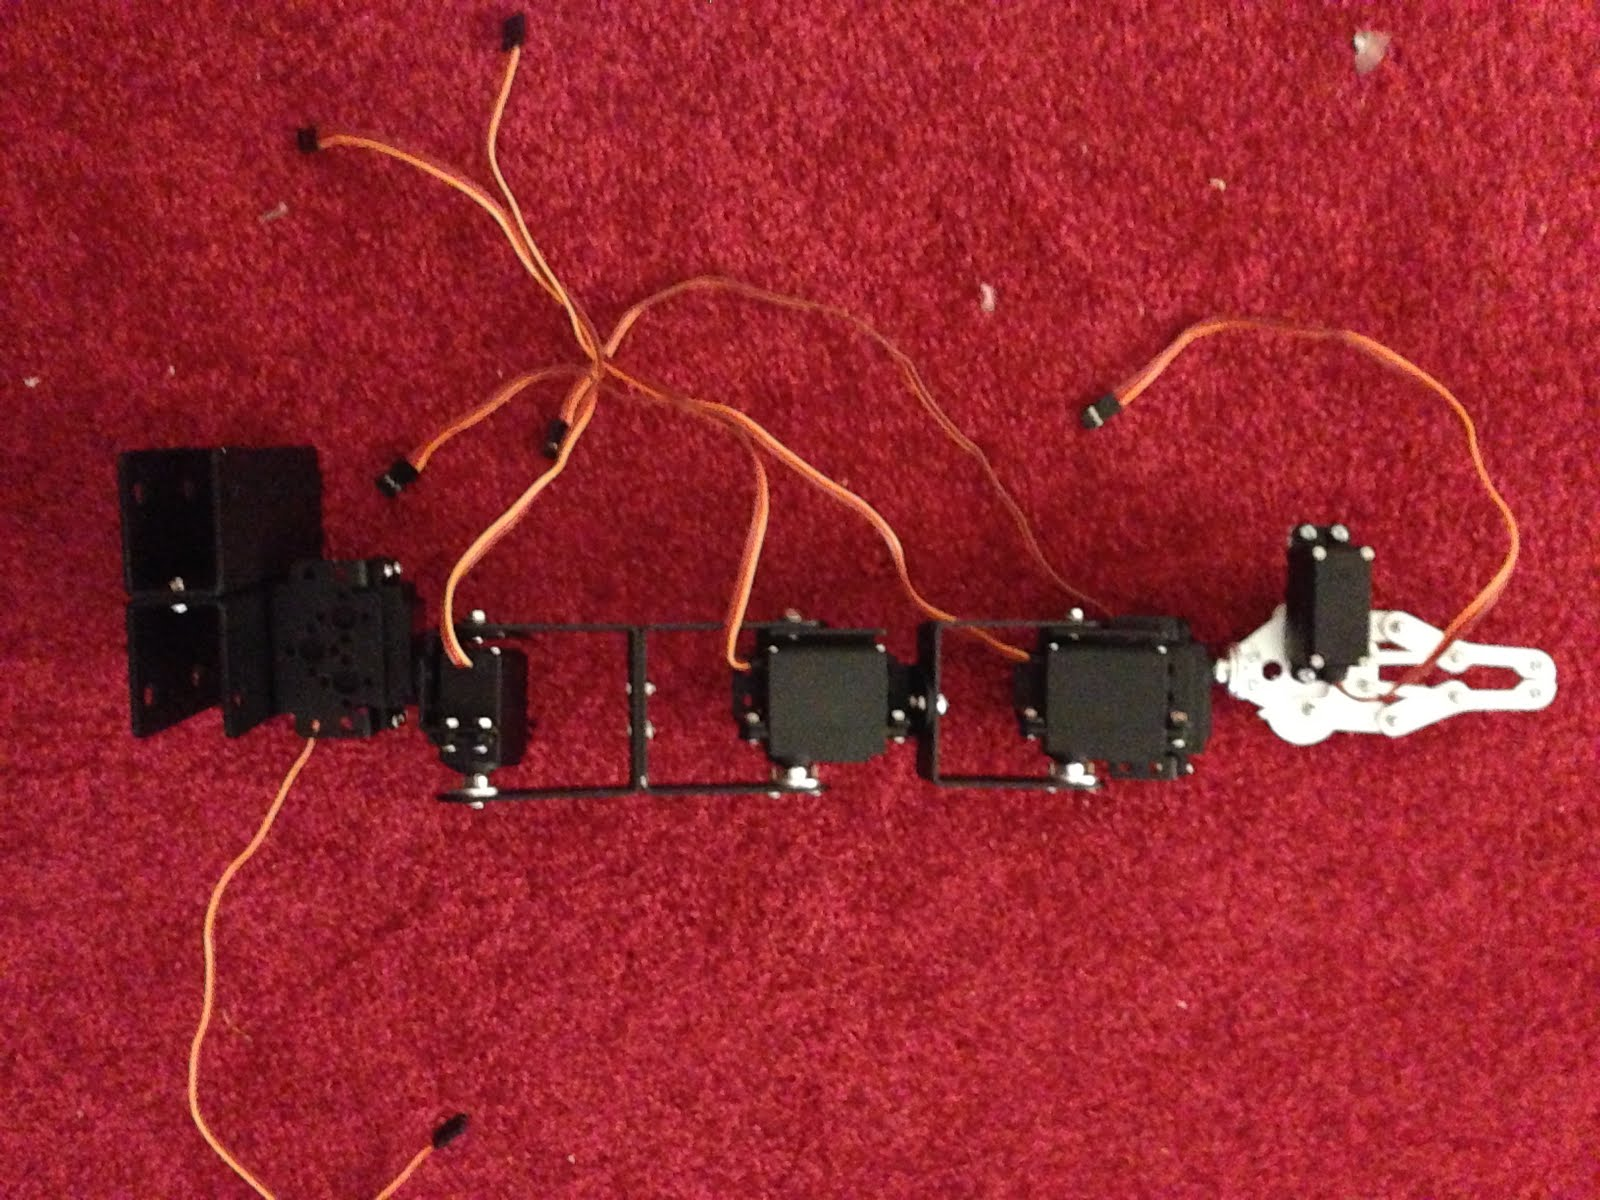 Sniff 6 Dof Robot Arm Kit Assembly Instructions How To Build Simple Servo Tester Use The Run All Parts Through Their Range Of Motion Hopefully You Checked Each Joint As Built It Make Sure That Was